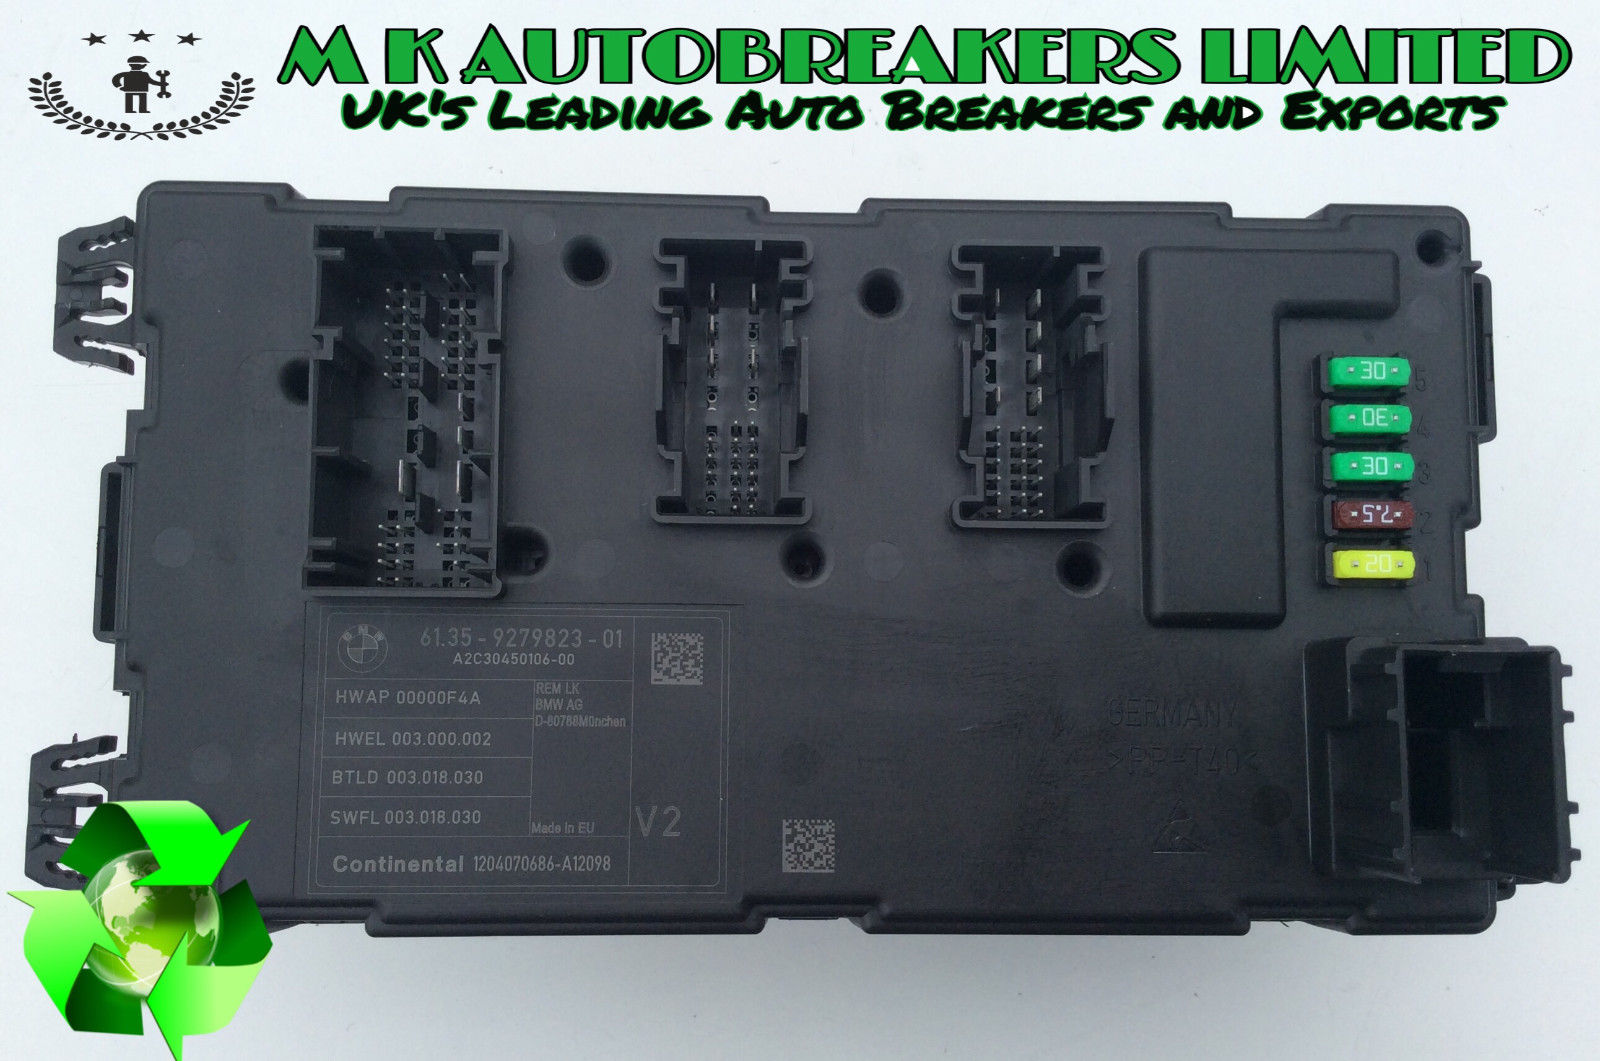 Bmw E90 Fuse Box Spares Archive Of Automotive Wiring Diagram E91 3 Series From 05 08 Front Breaking For Spare Rh Mkautobreakers